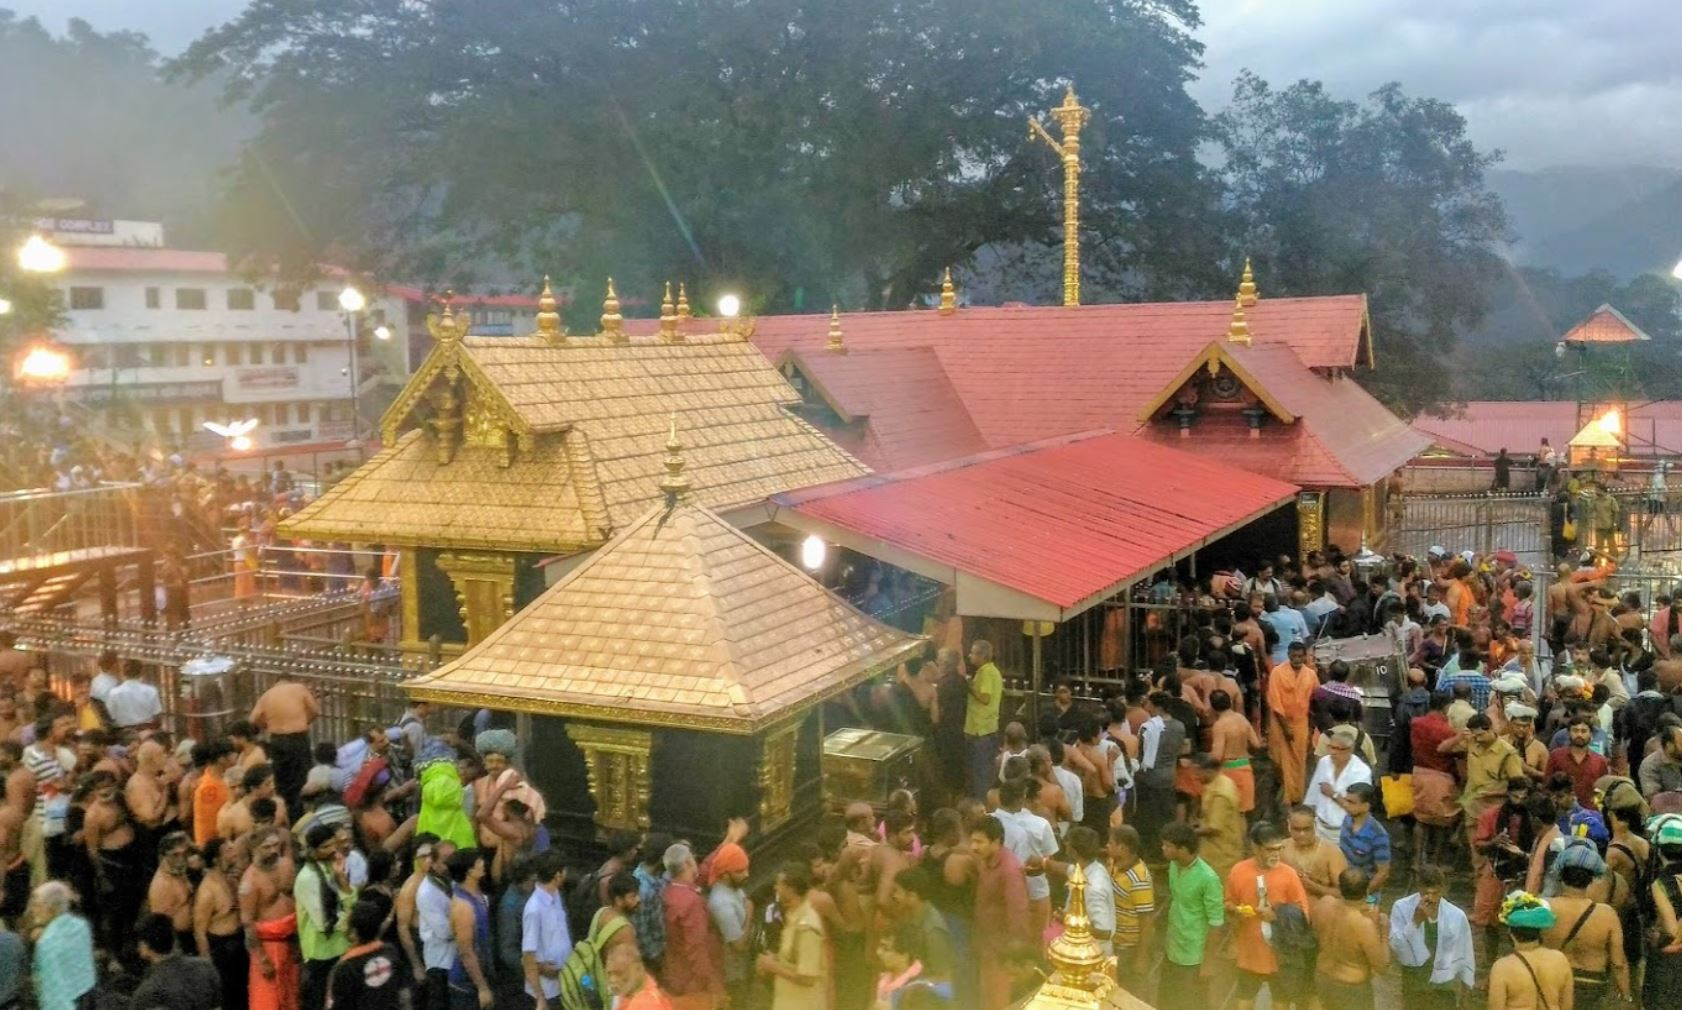 Kerala Govt softens stand on Sabarimala women's entry issue